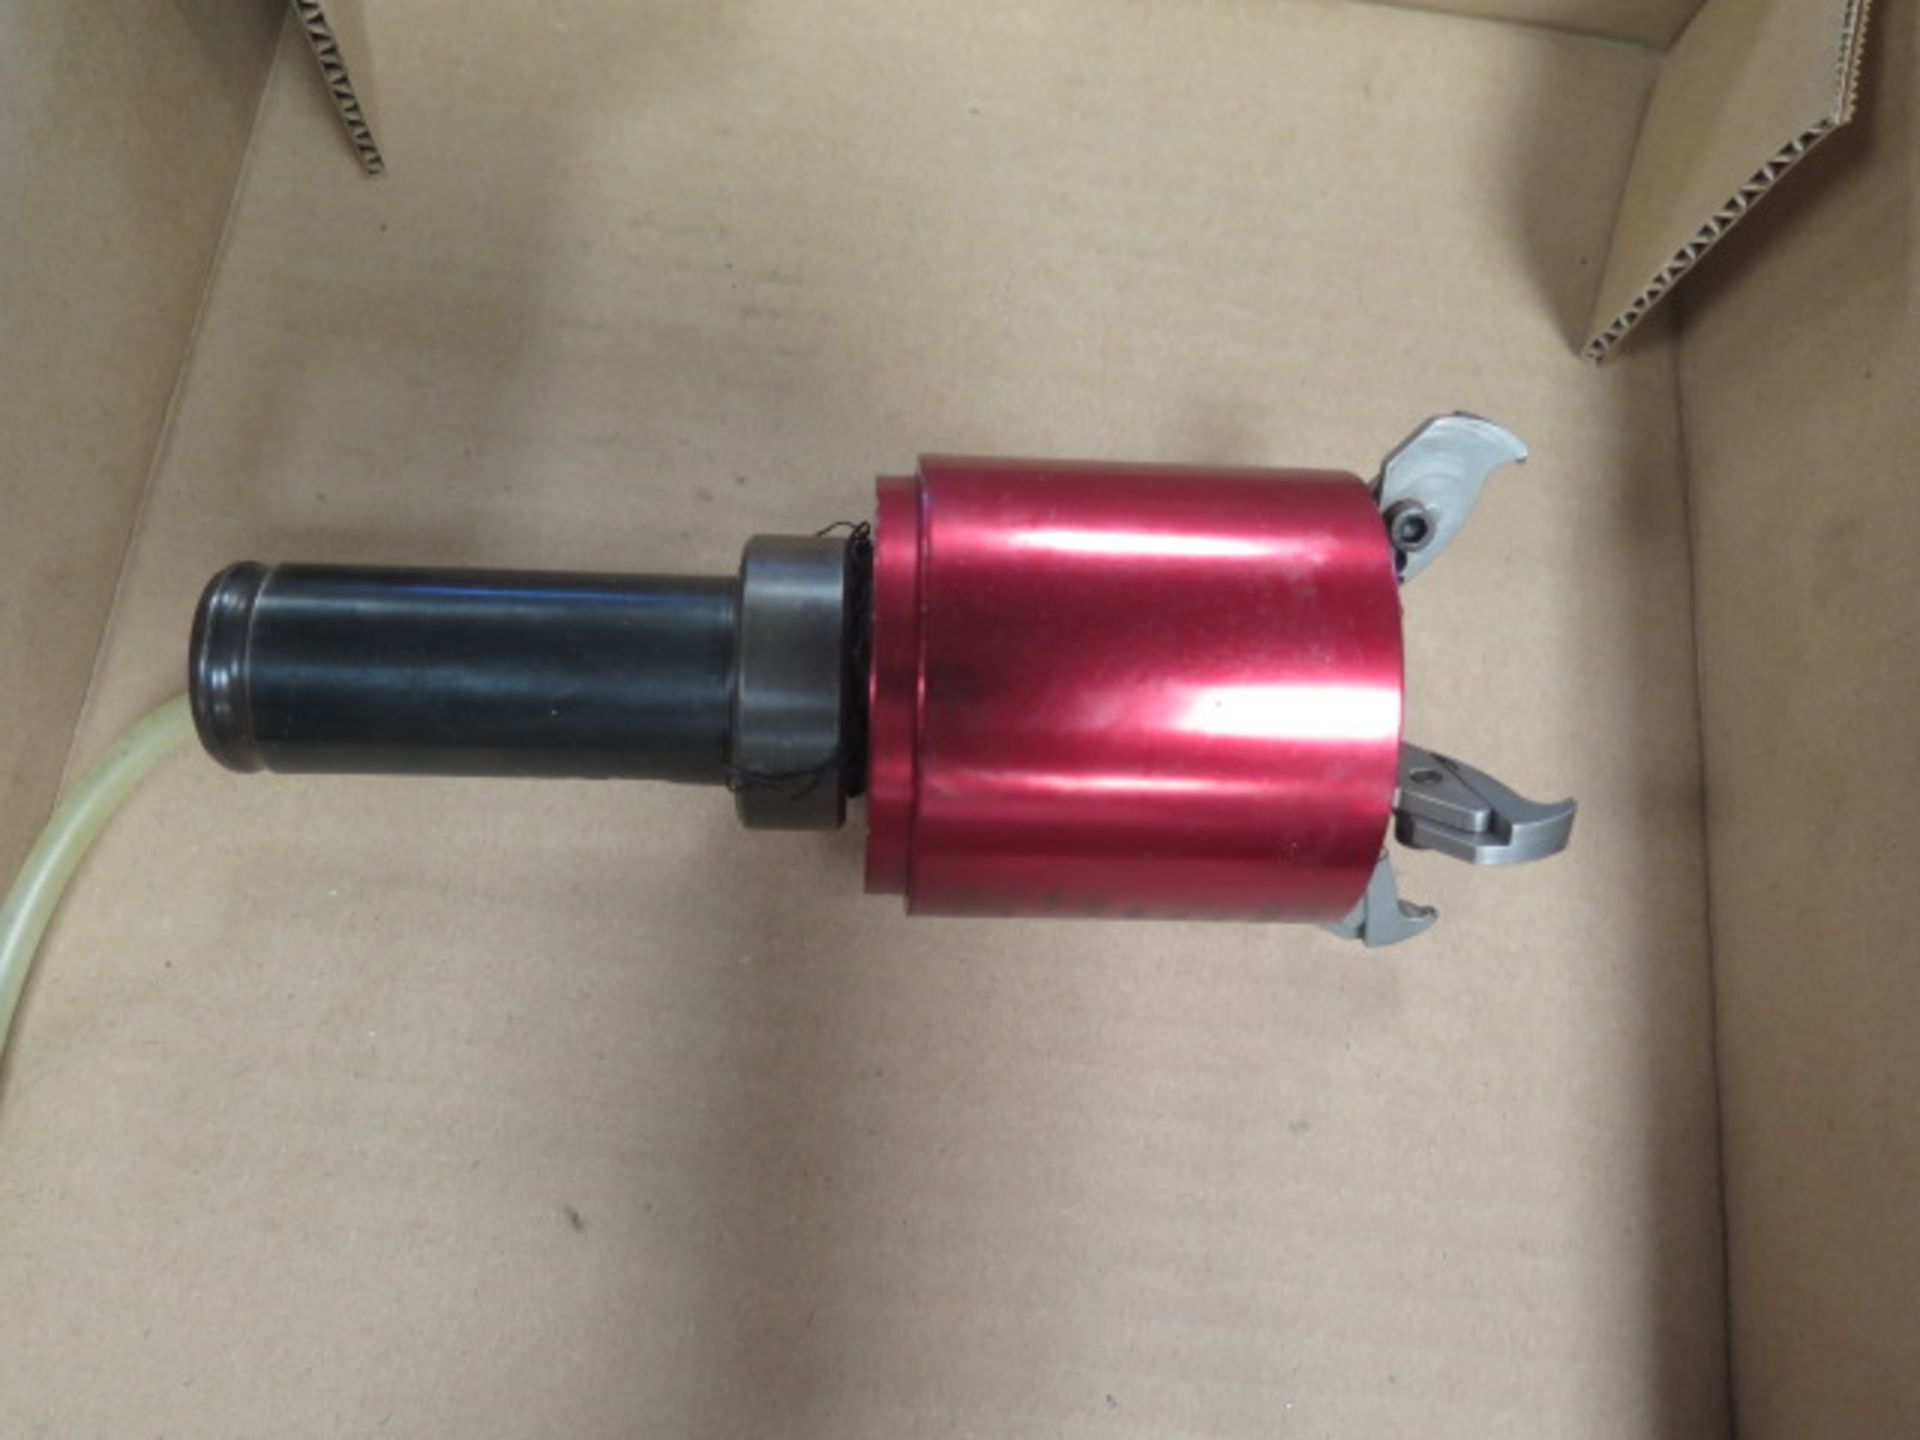 Coolant Actuated Bar Puller (SOLD AS-IS - NO WARRANTY) - Image 2 of 3